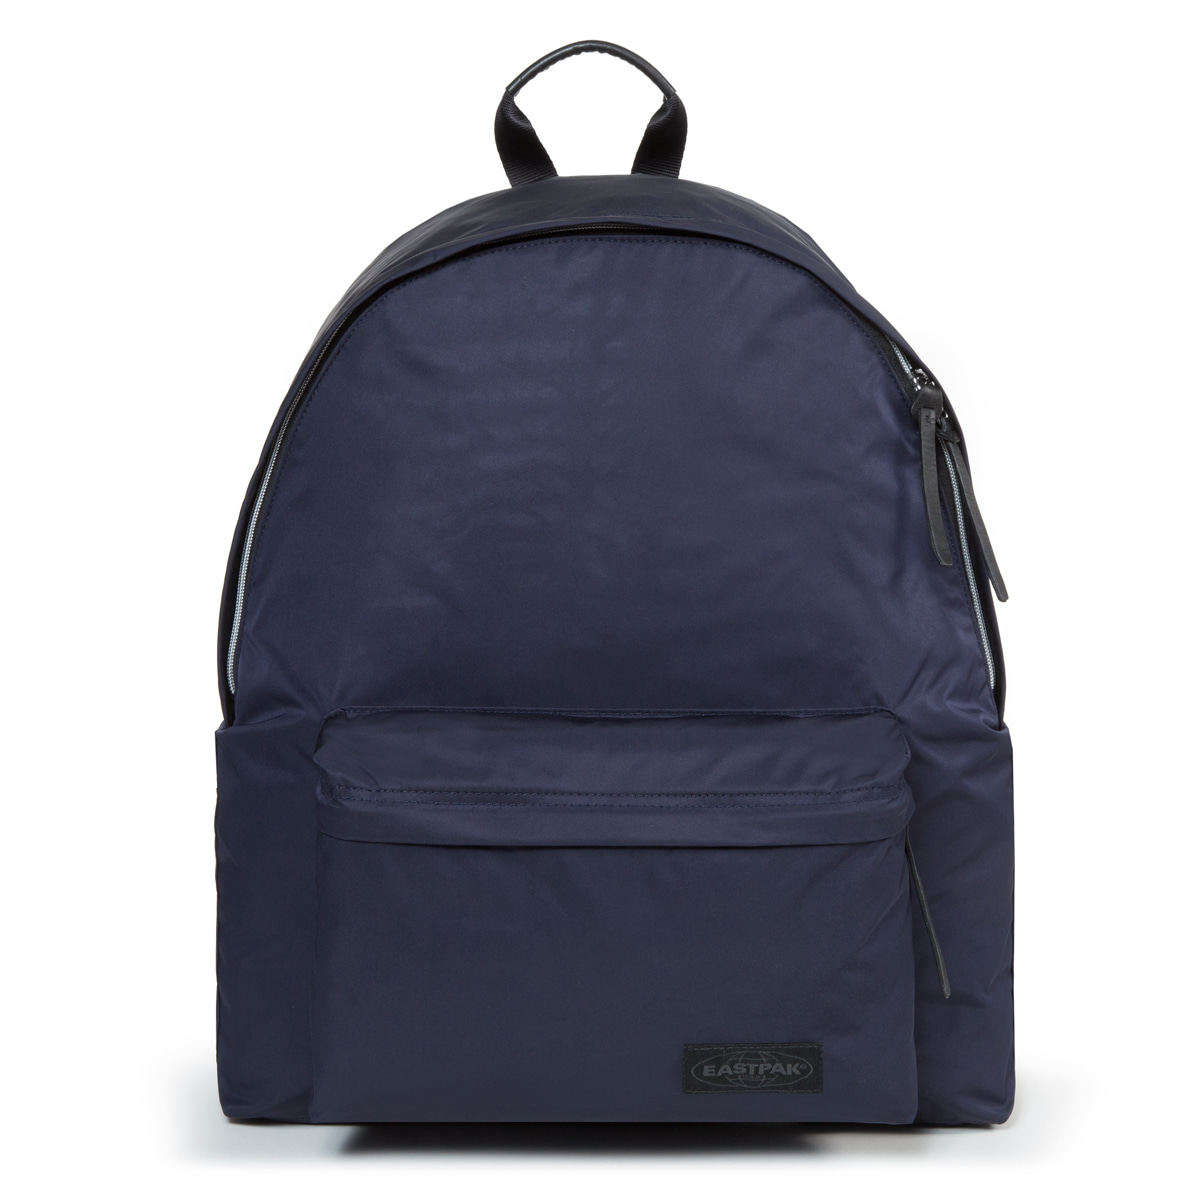 [EASTPAK] JAPAN COLLECTION 백팩 페디드 파커 XL EICBA14 06U